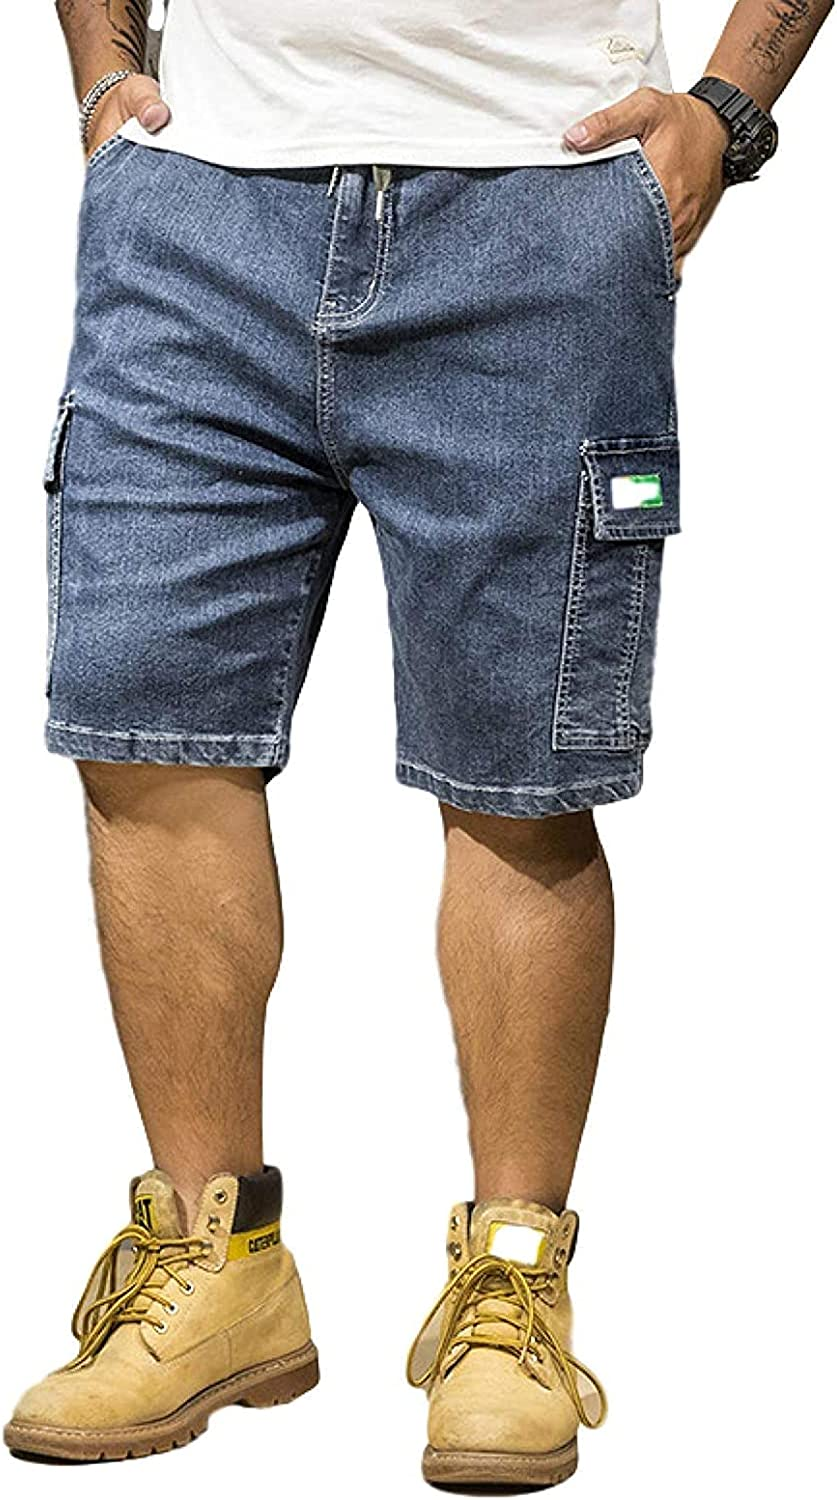 ZYUEER Men's Relaxed Fit Denim Shorts with Drawstring Multi-Pocket Distressed